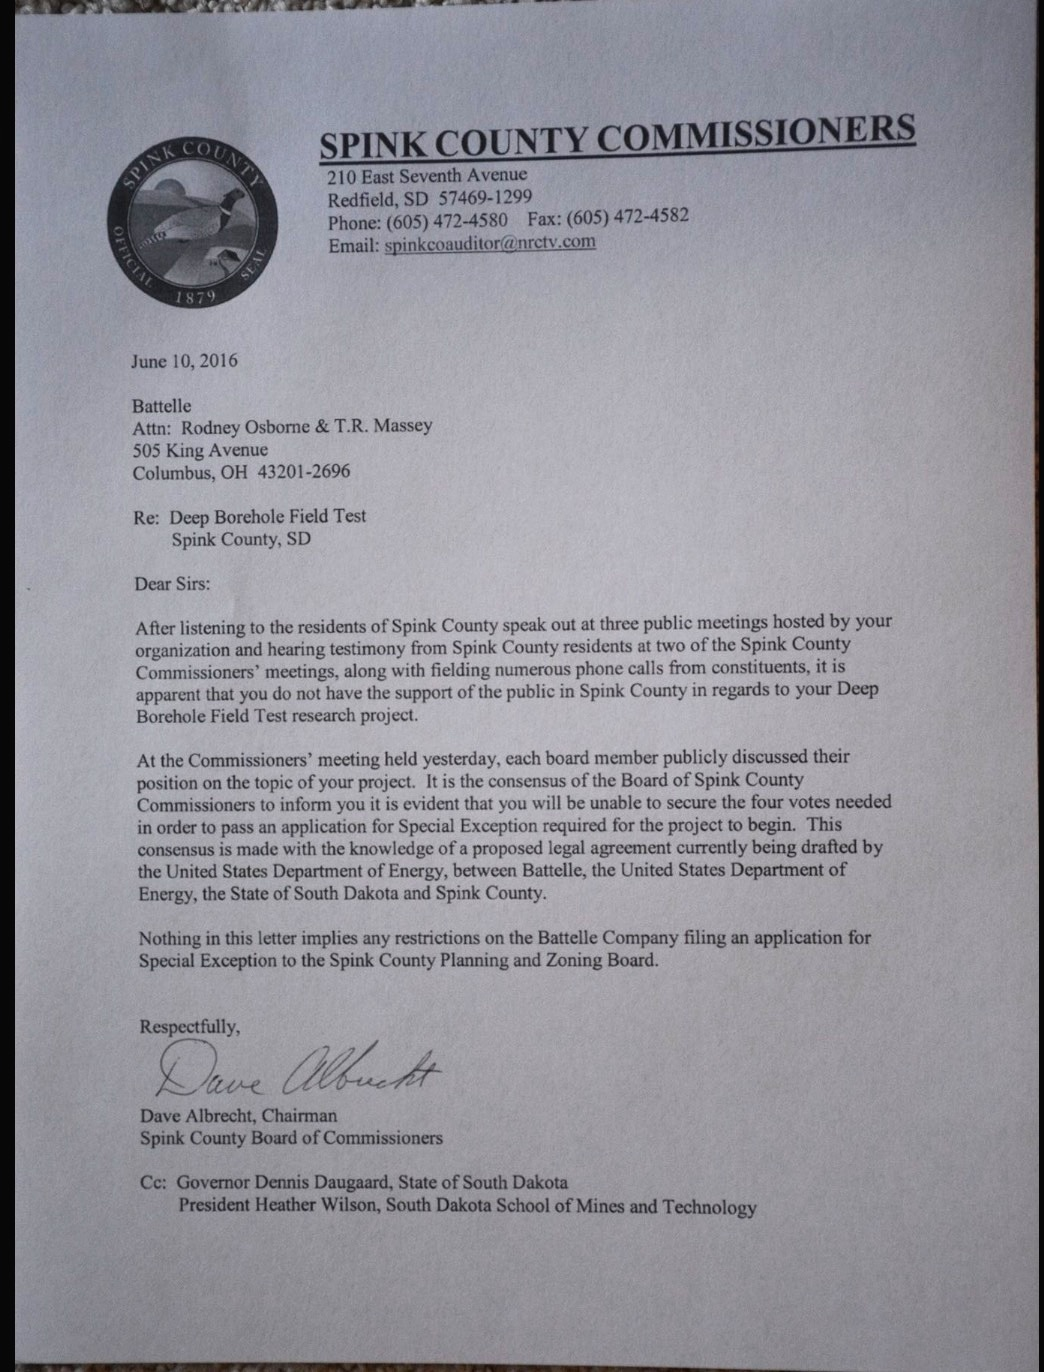 South dakota spink county doland - Dave Albrecht Spink County Commission Chairman Letter To Battelle 2016 06 10